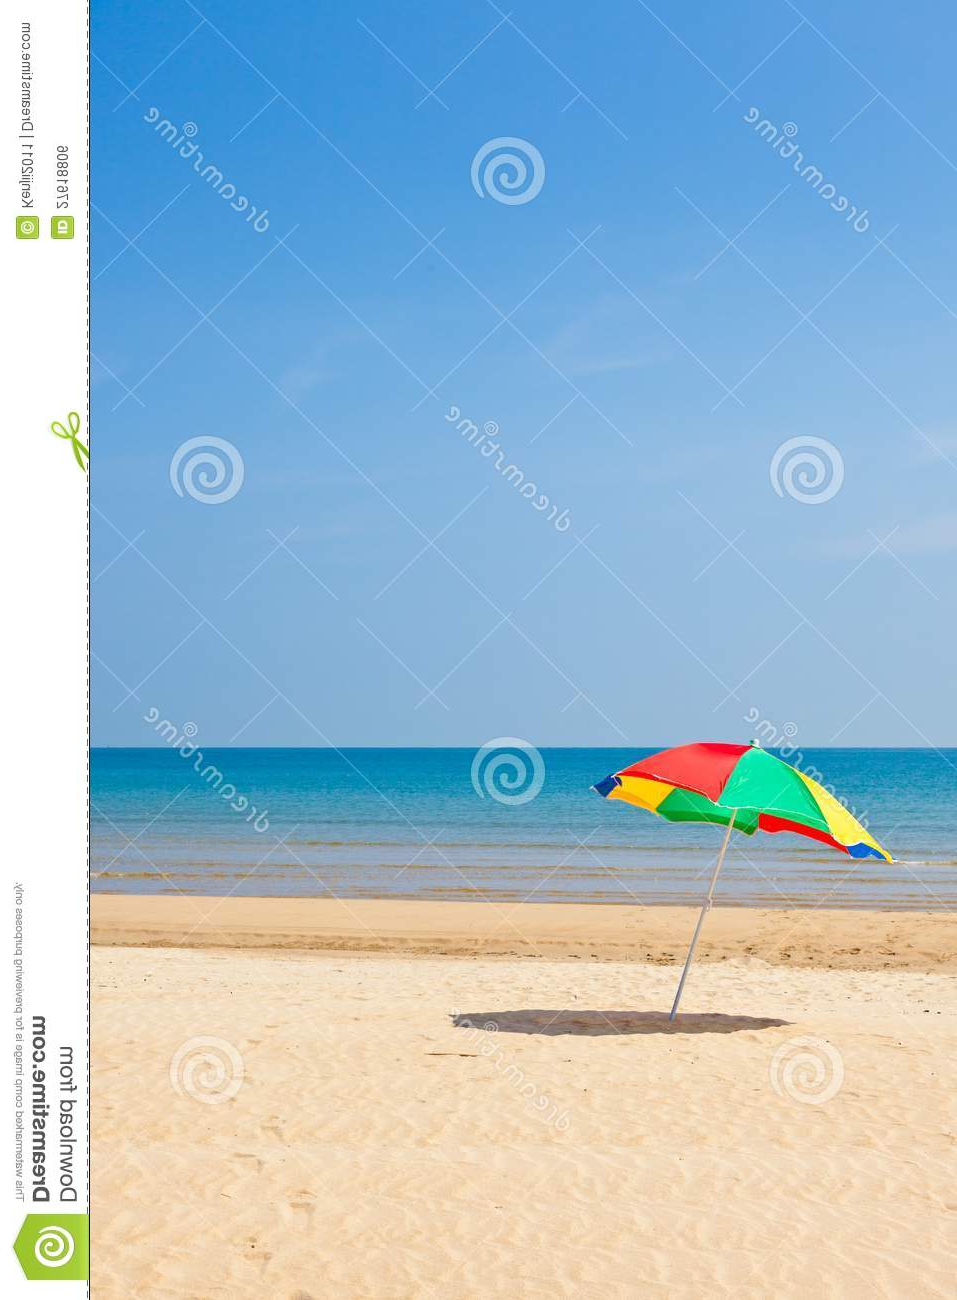 Seaside Beach Umbrellas Throughout Popular Seaside Beach Umbrella Stock Photo (View 15 of 20)